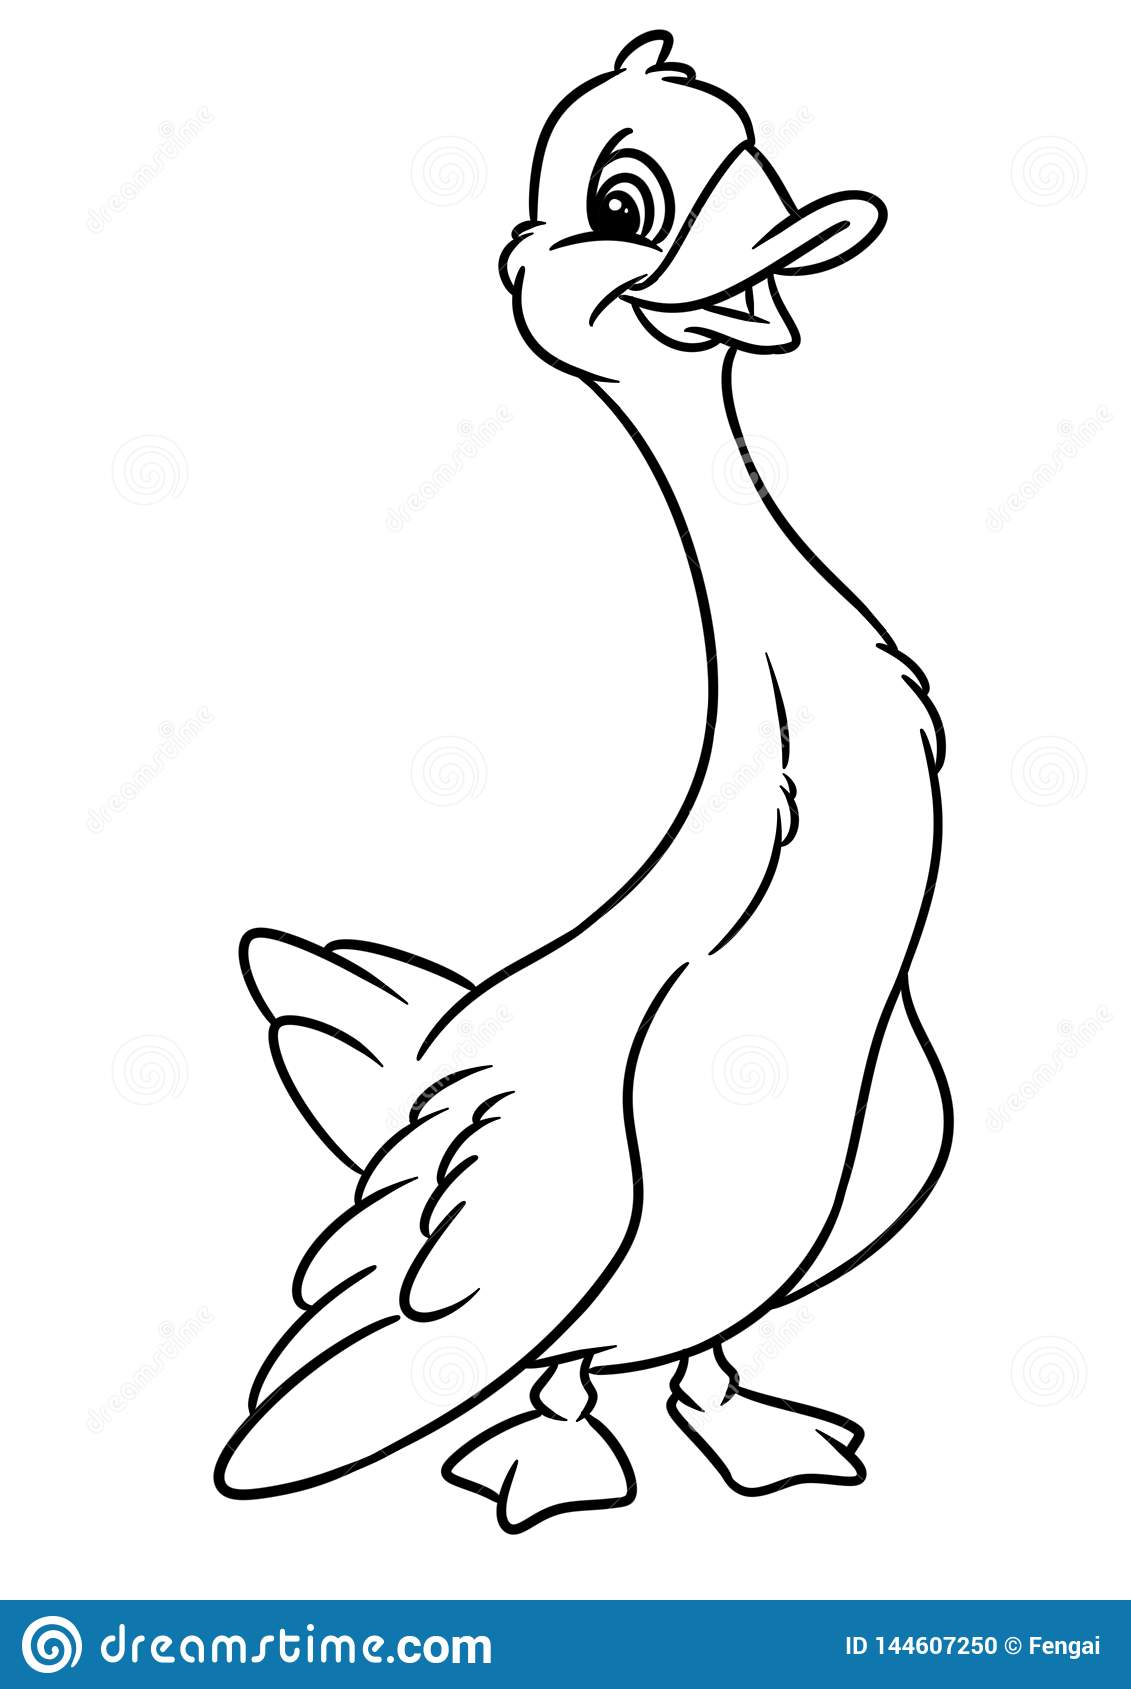 Funny Goose Animal Character Cartoon Illustration Coloring Page Stock Illustration Illustration Of Character Contour 144607250